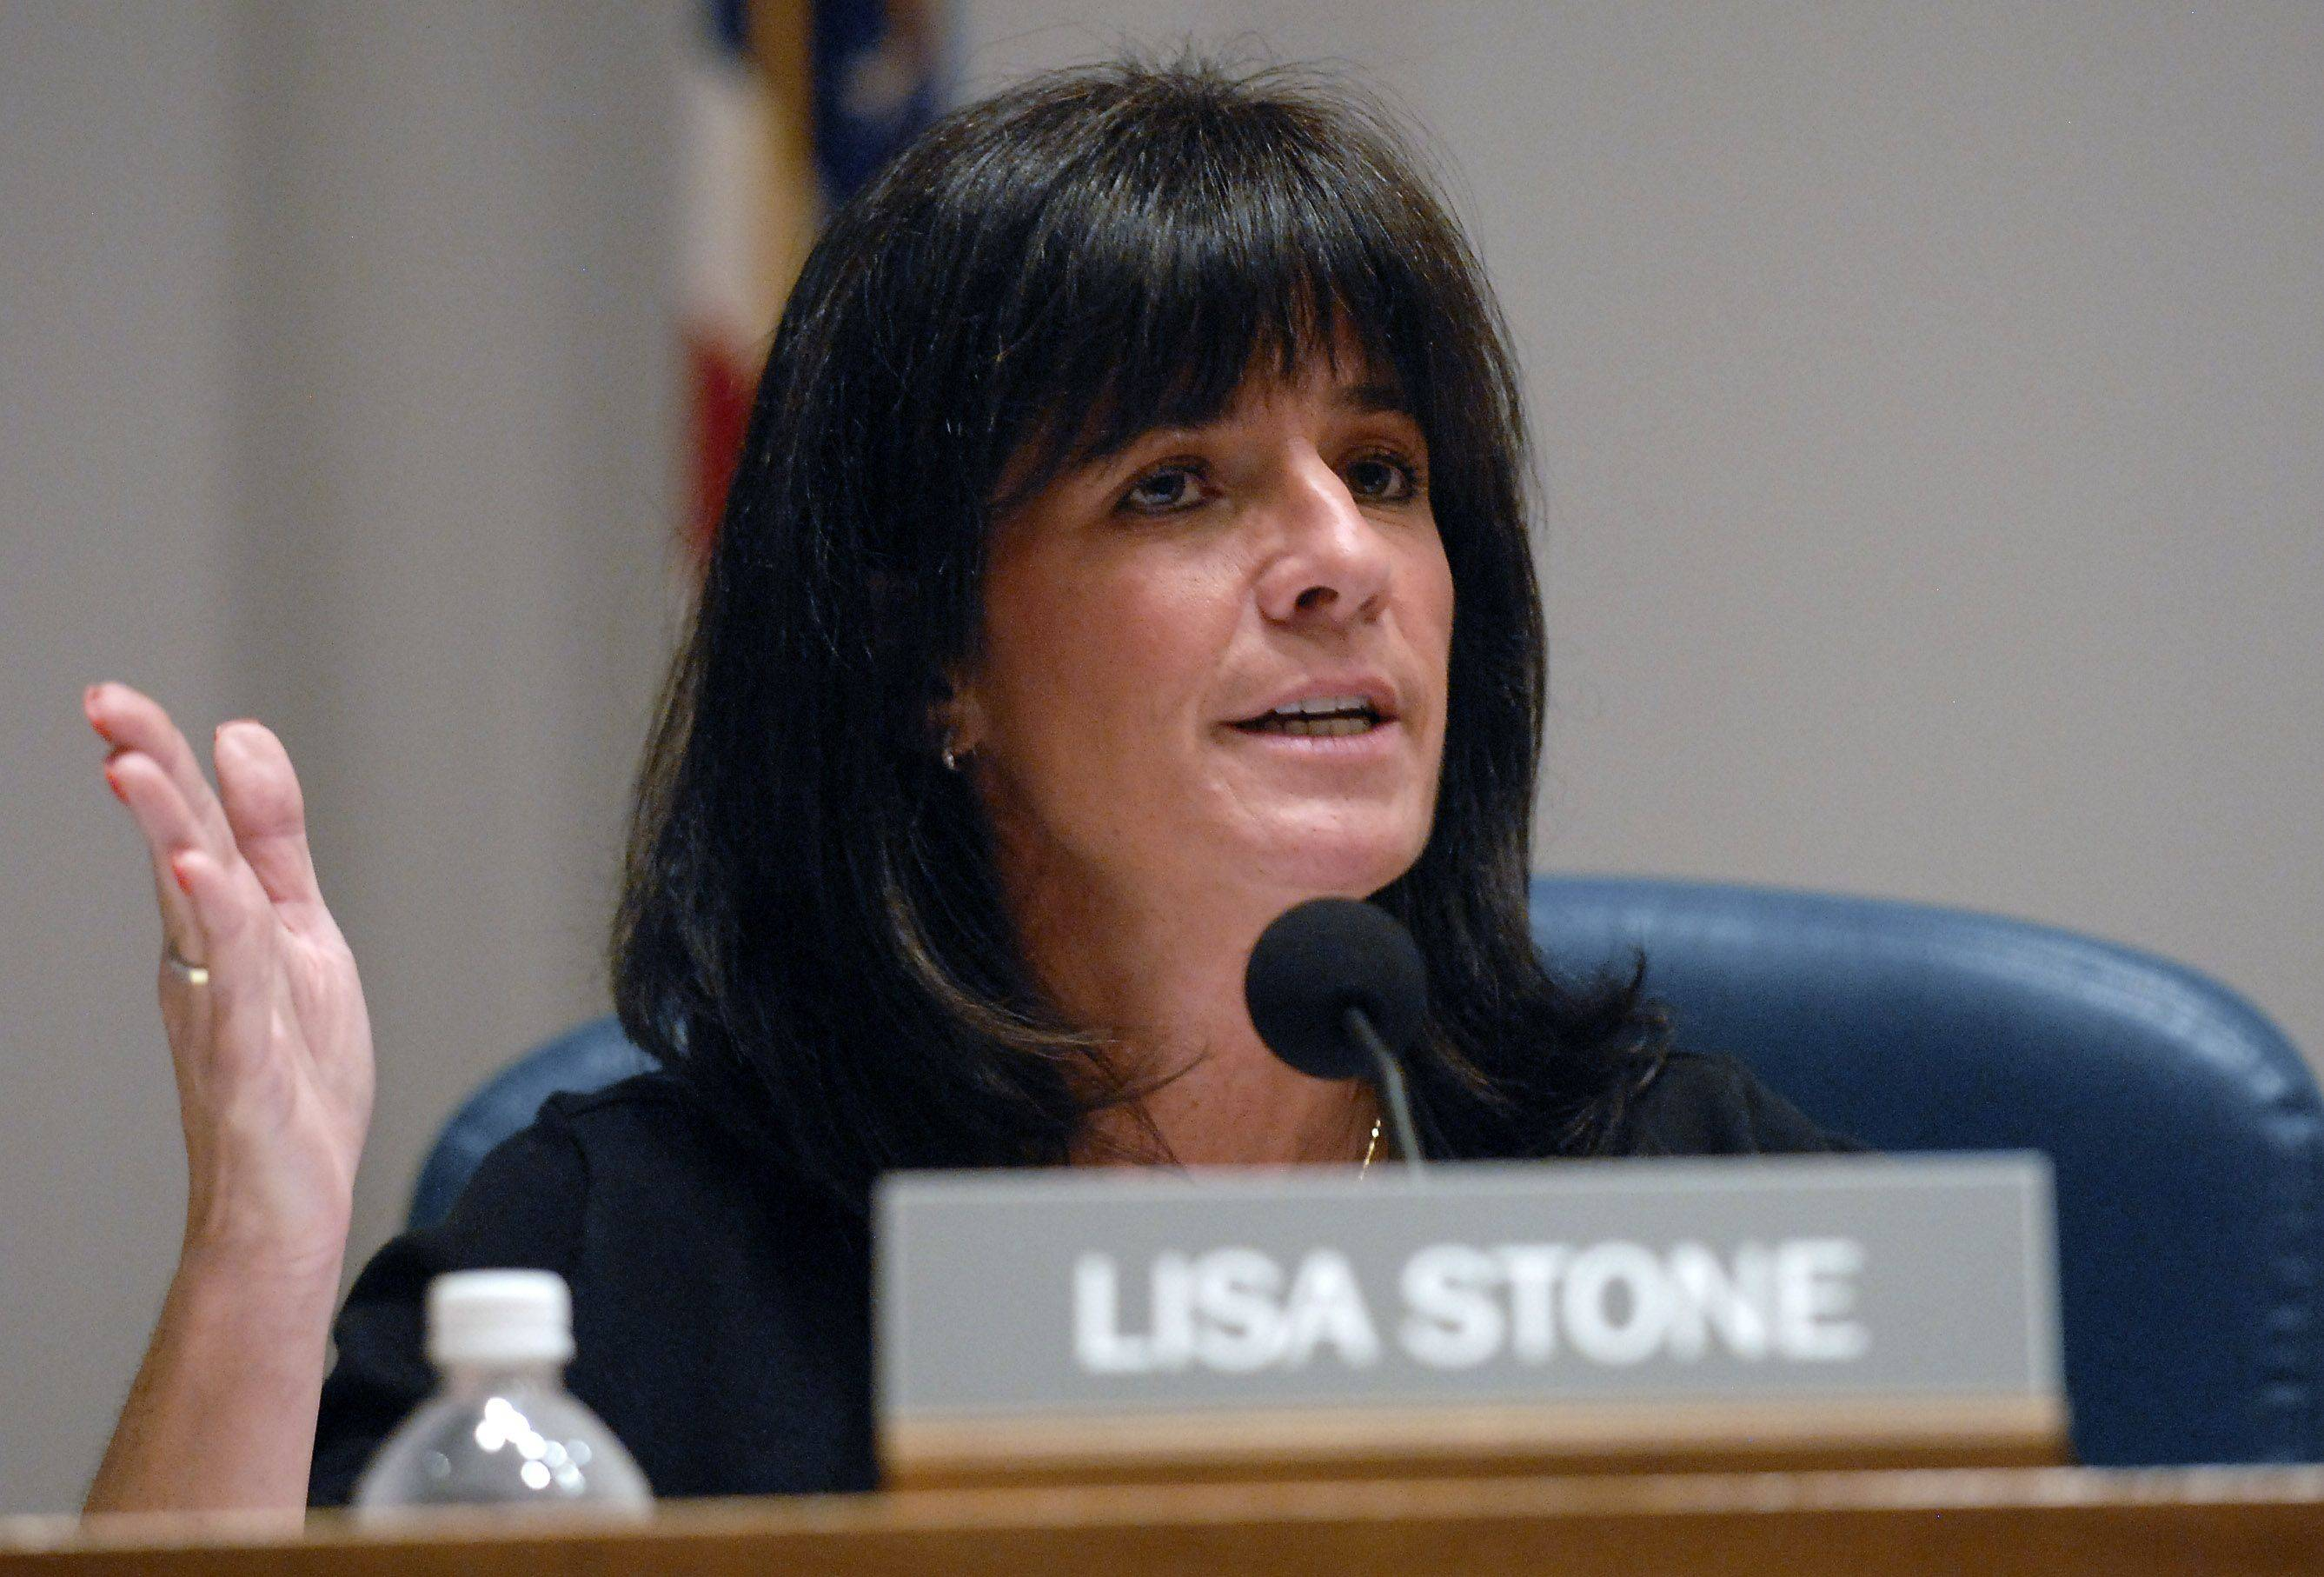 Buffalo Grove Trustee Lisa Stone says she believes residents know her heart is in the right place and will reject attempts to remove her from office.